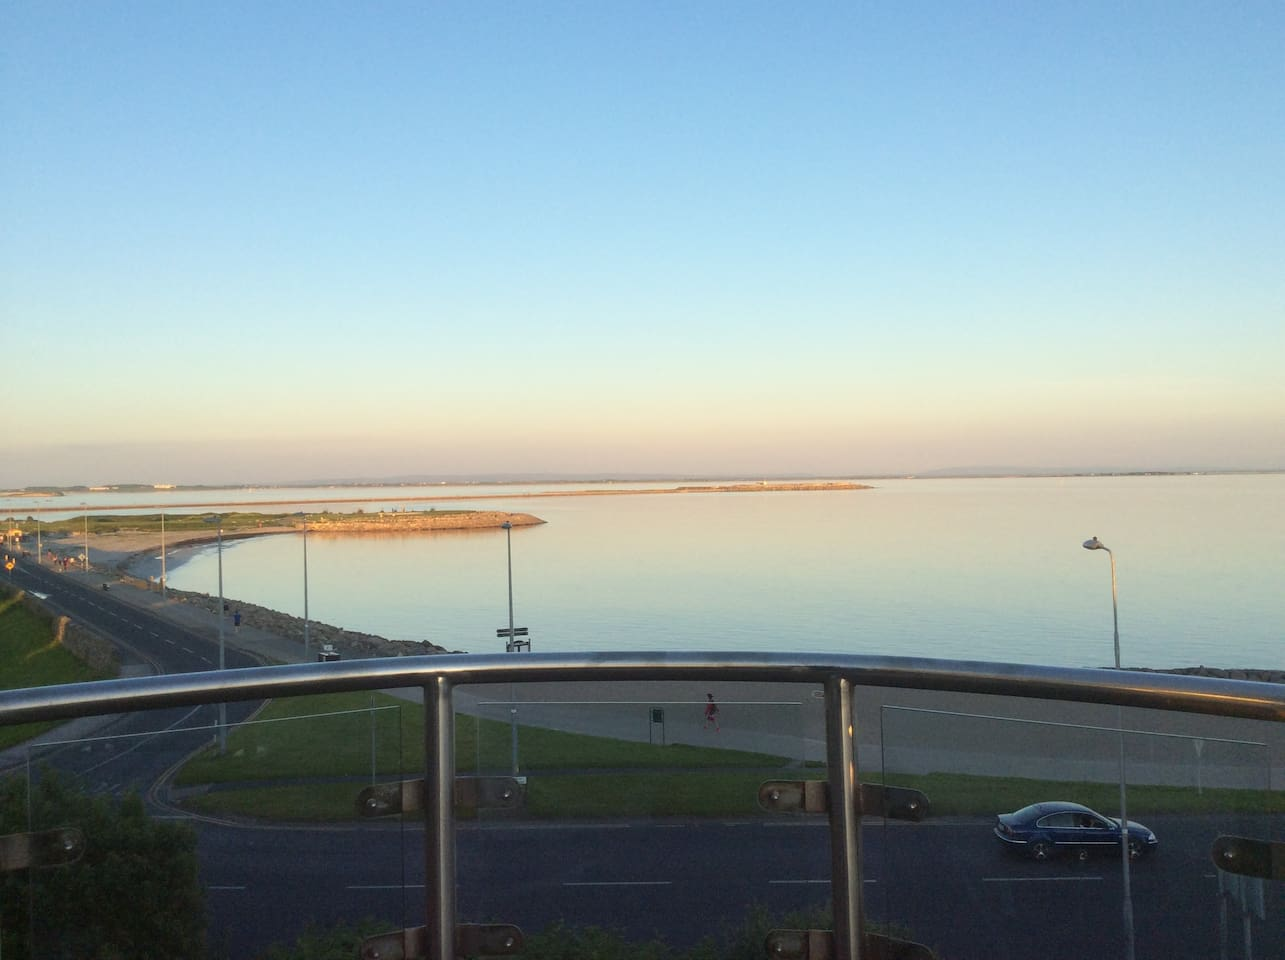 Galway Bay from Balcony view at sunset